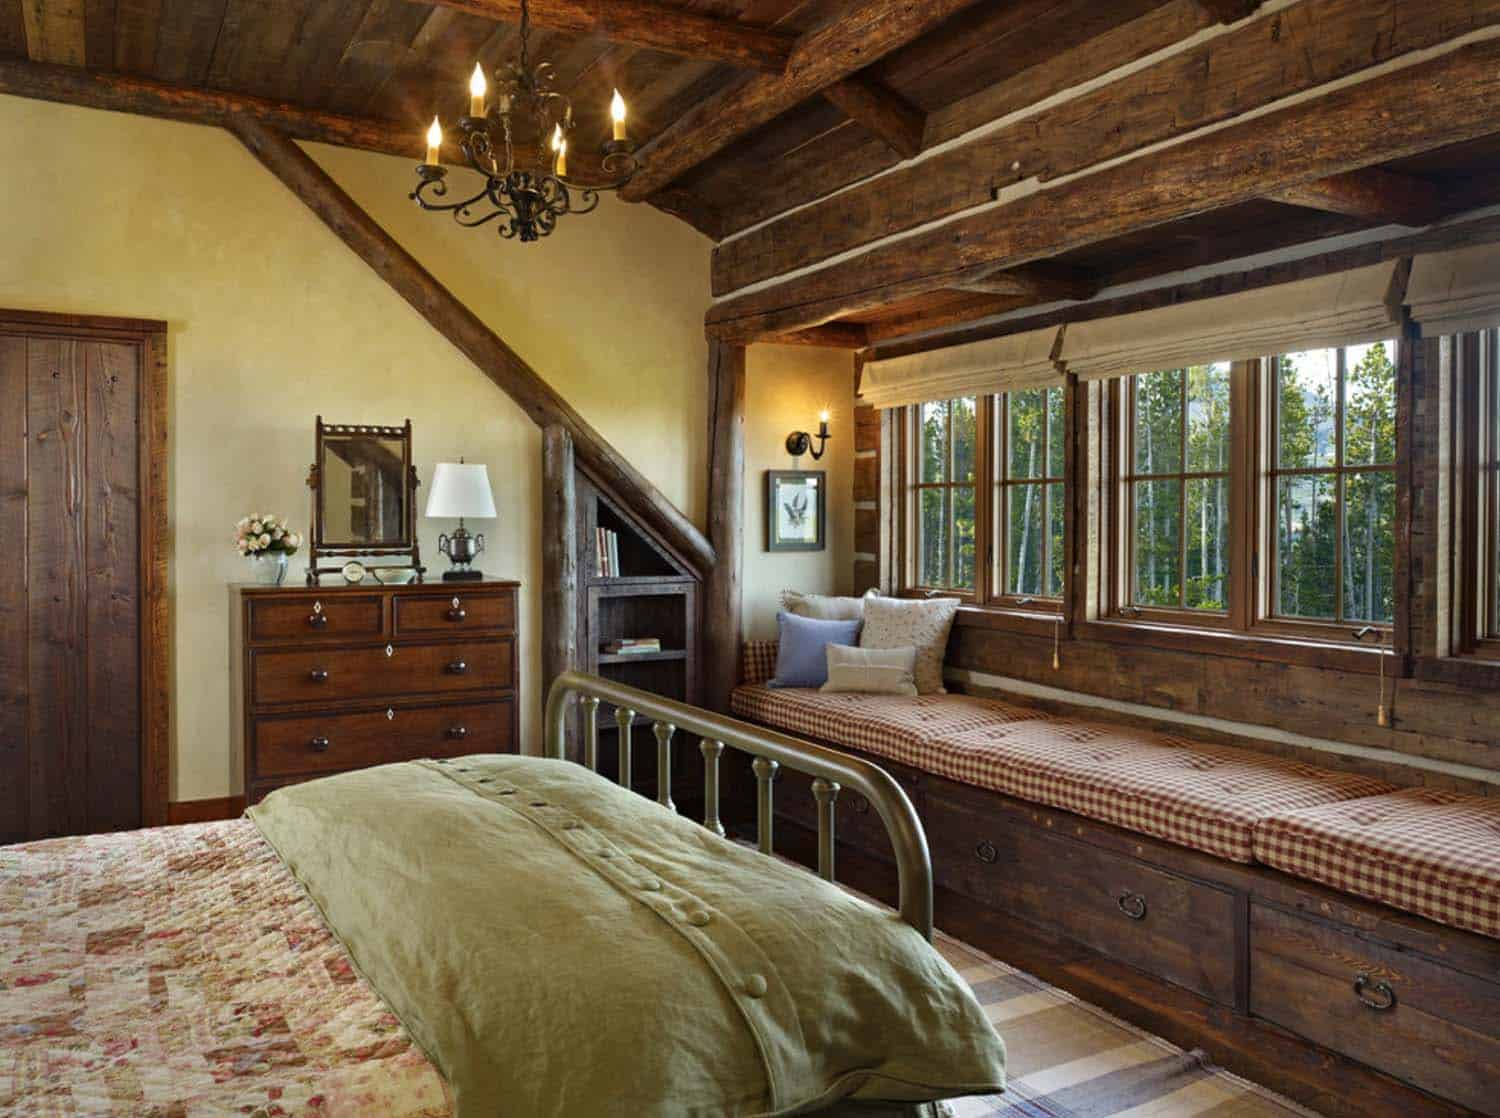 mountian-retreat-rustic-bedroom